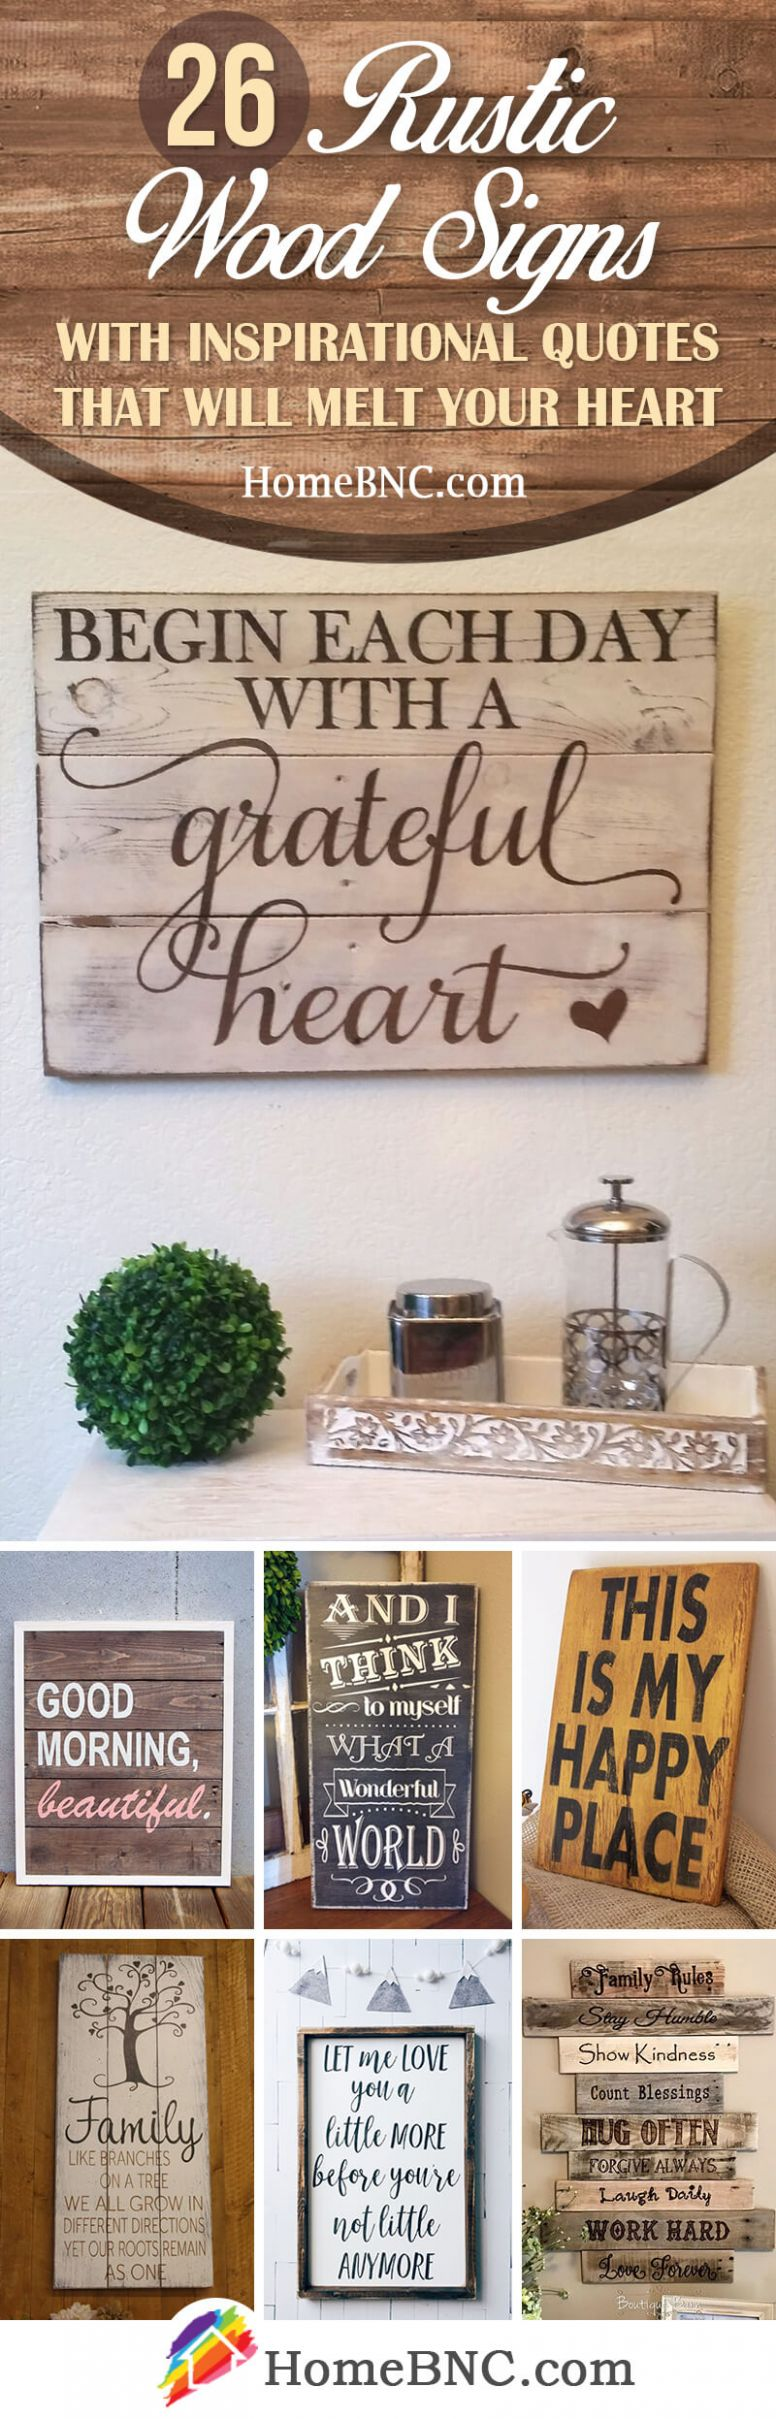 9 Best Rustic Wood Sign Ideas and Designs with Inspirational ..